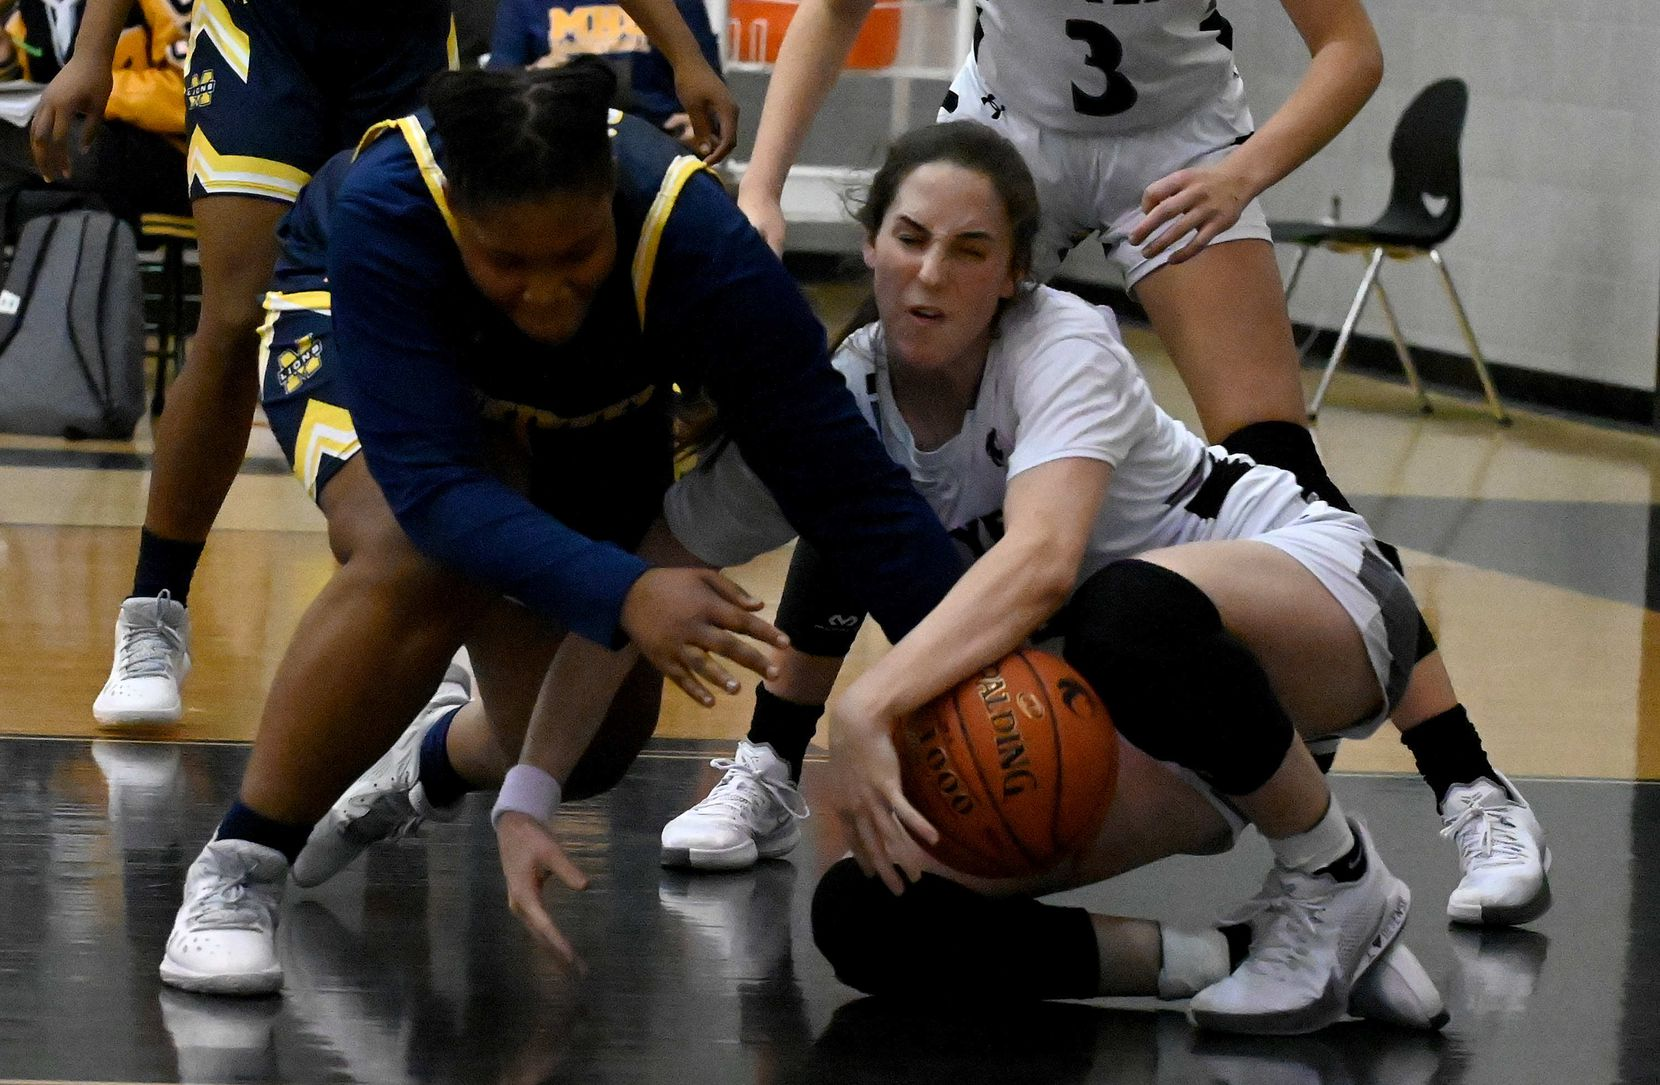 McKinney's Karlan Moore, left, Denton Guyer's Evie Goetz go after a loose ball in the second half of a girls high school basketball game between McKinney and Denton Guyer, Tuesday, Dec. 15, 2020, in Denton, Texas.